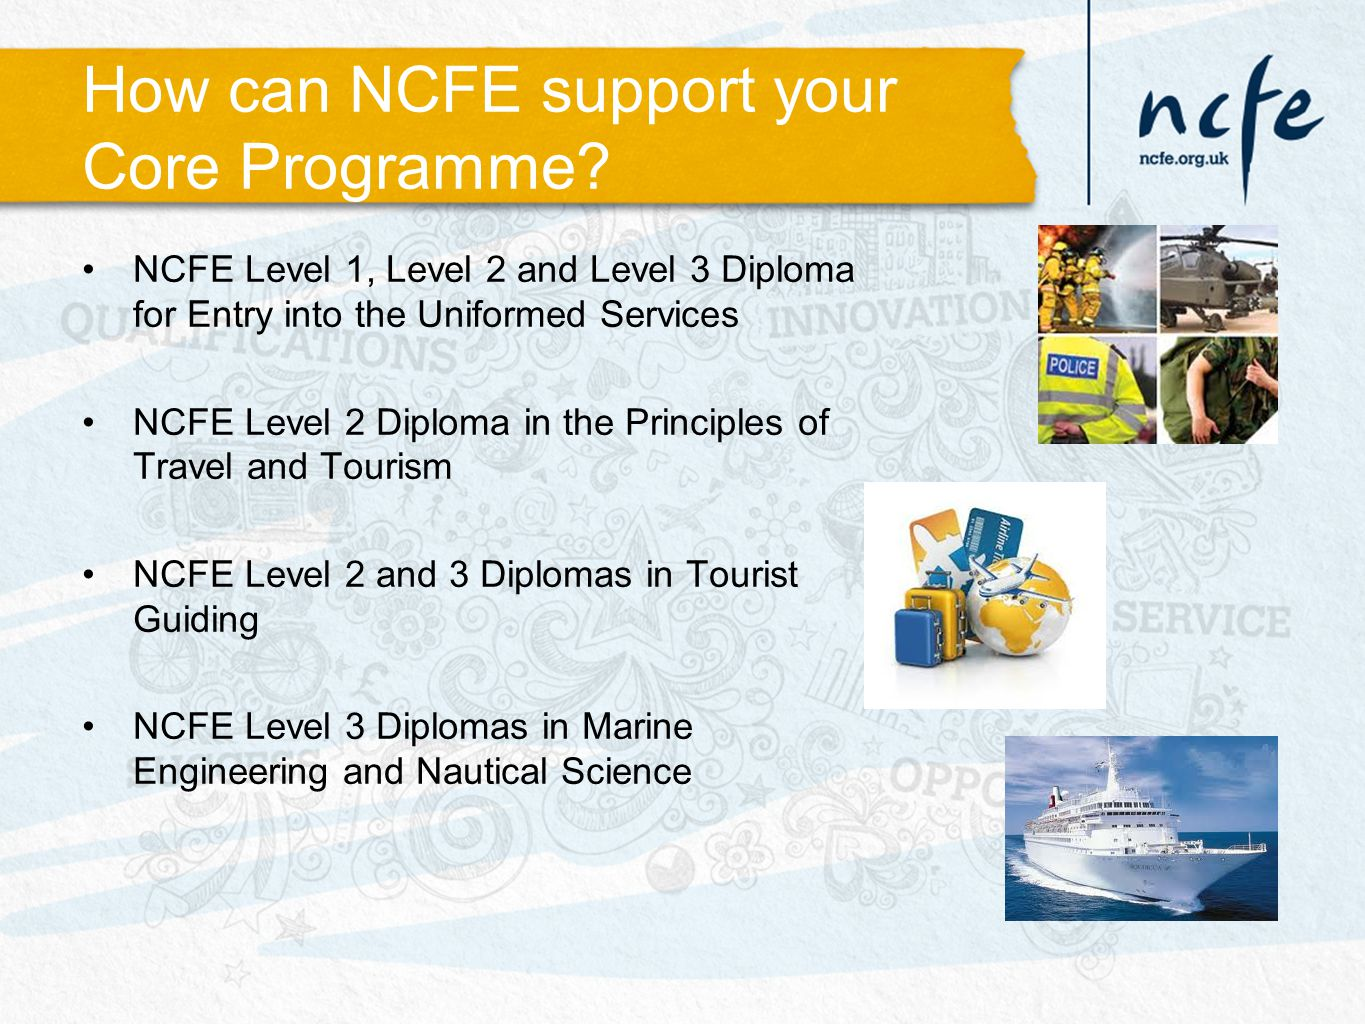 How can NCFE support your Core Programme? NCFE Level 1, Level 2 and Level 3 Diploma for Entry into the Uniformed Services NCFE Level 2 Diploma in the